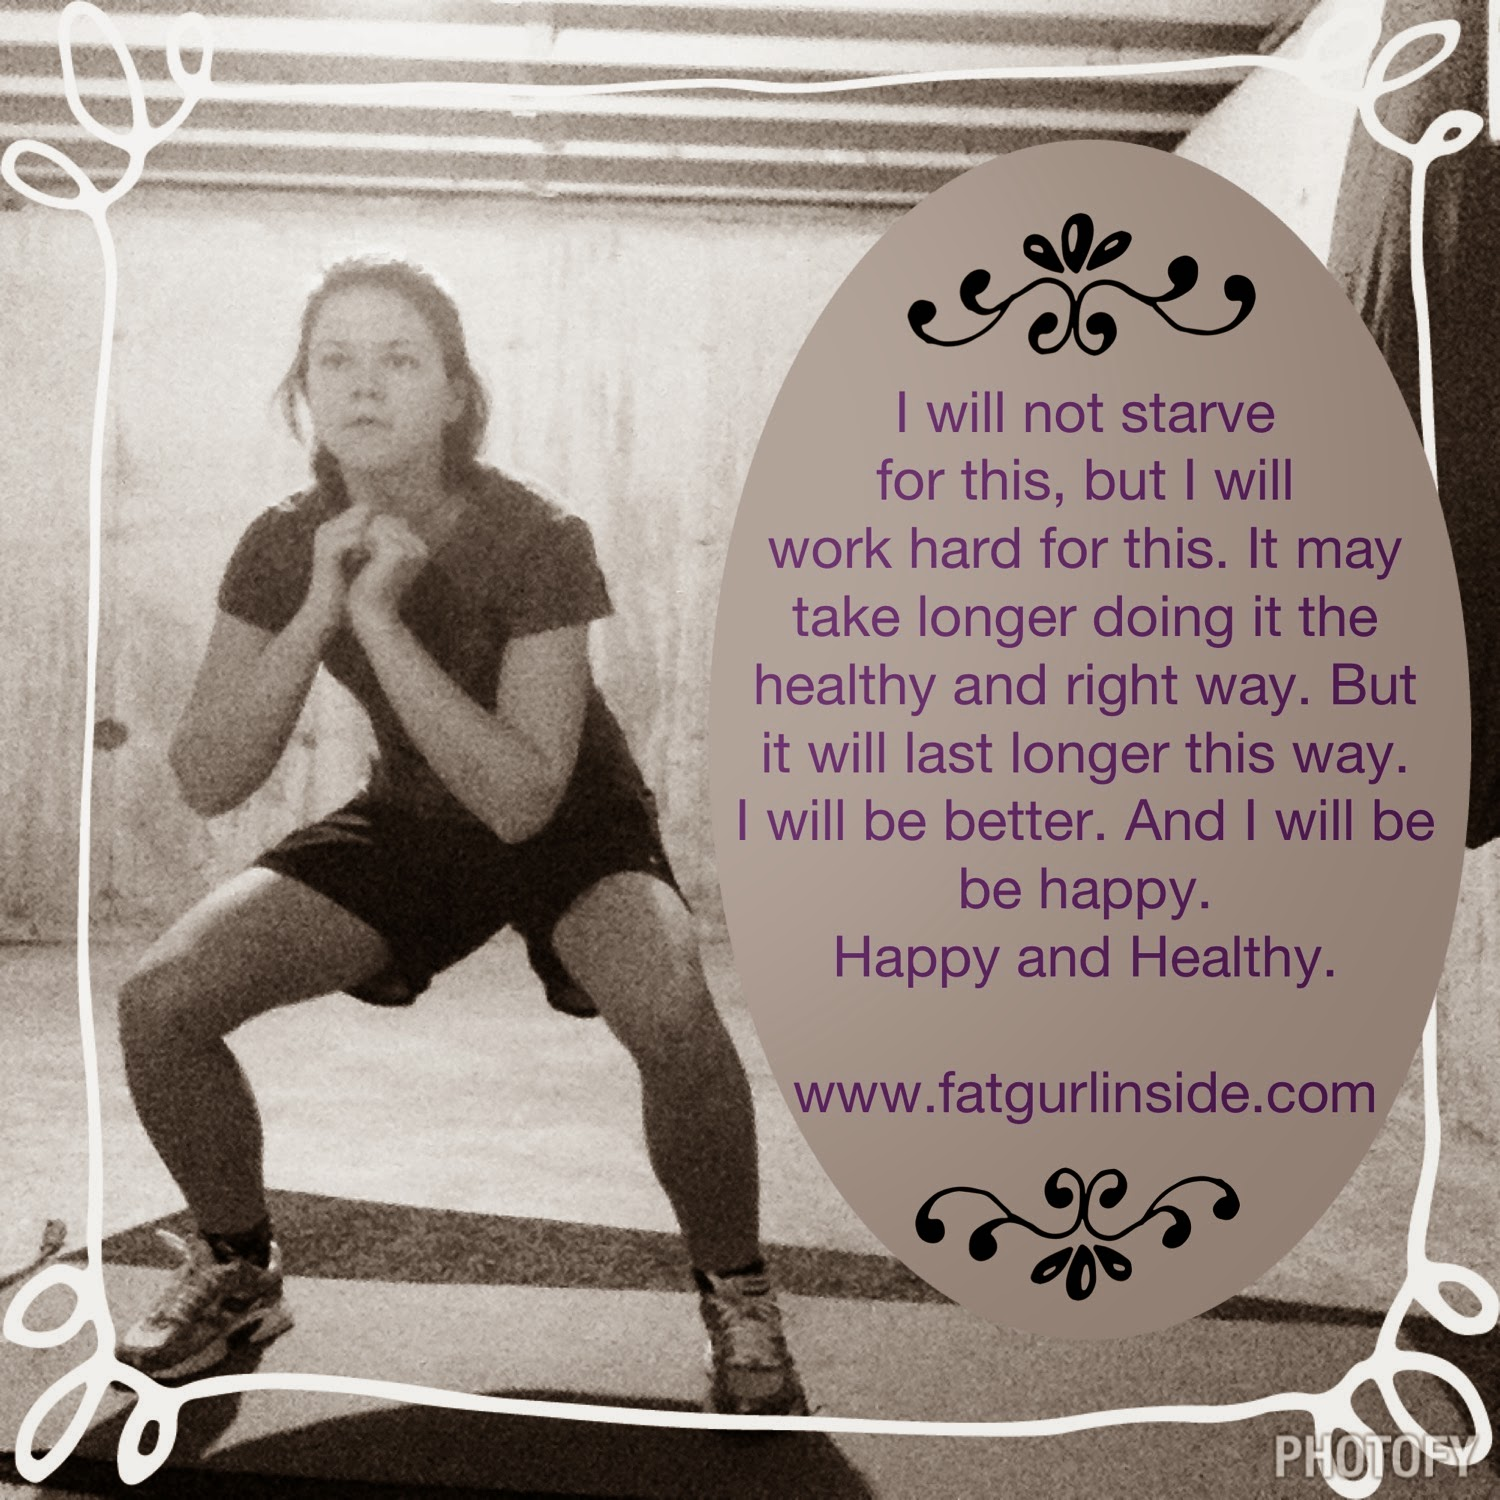 Being Healthy and Happy May Have A Cost www.fatgurlinside.com